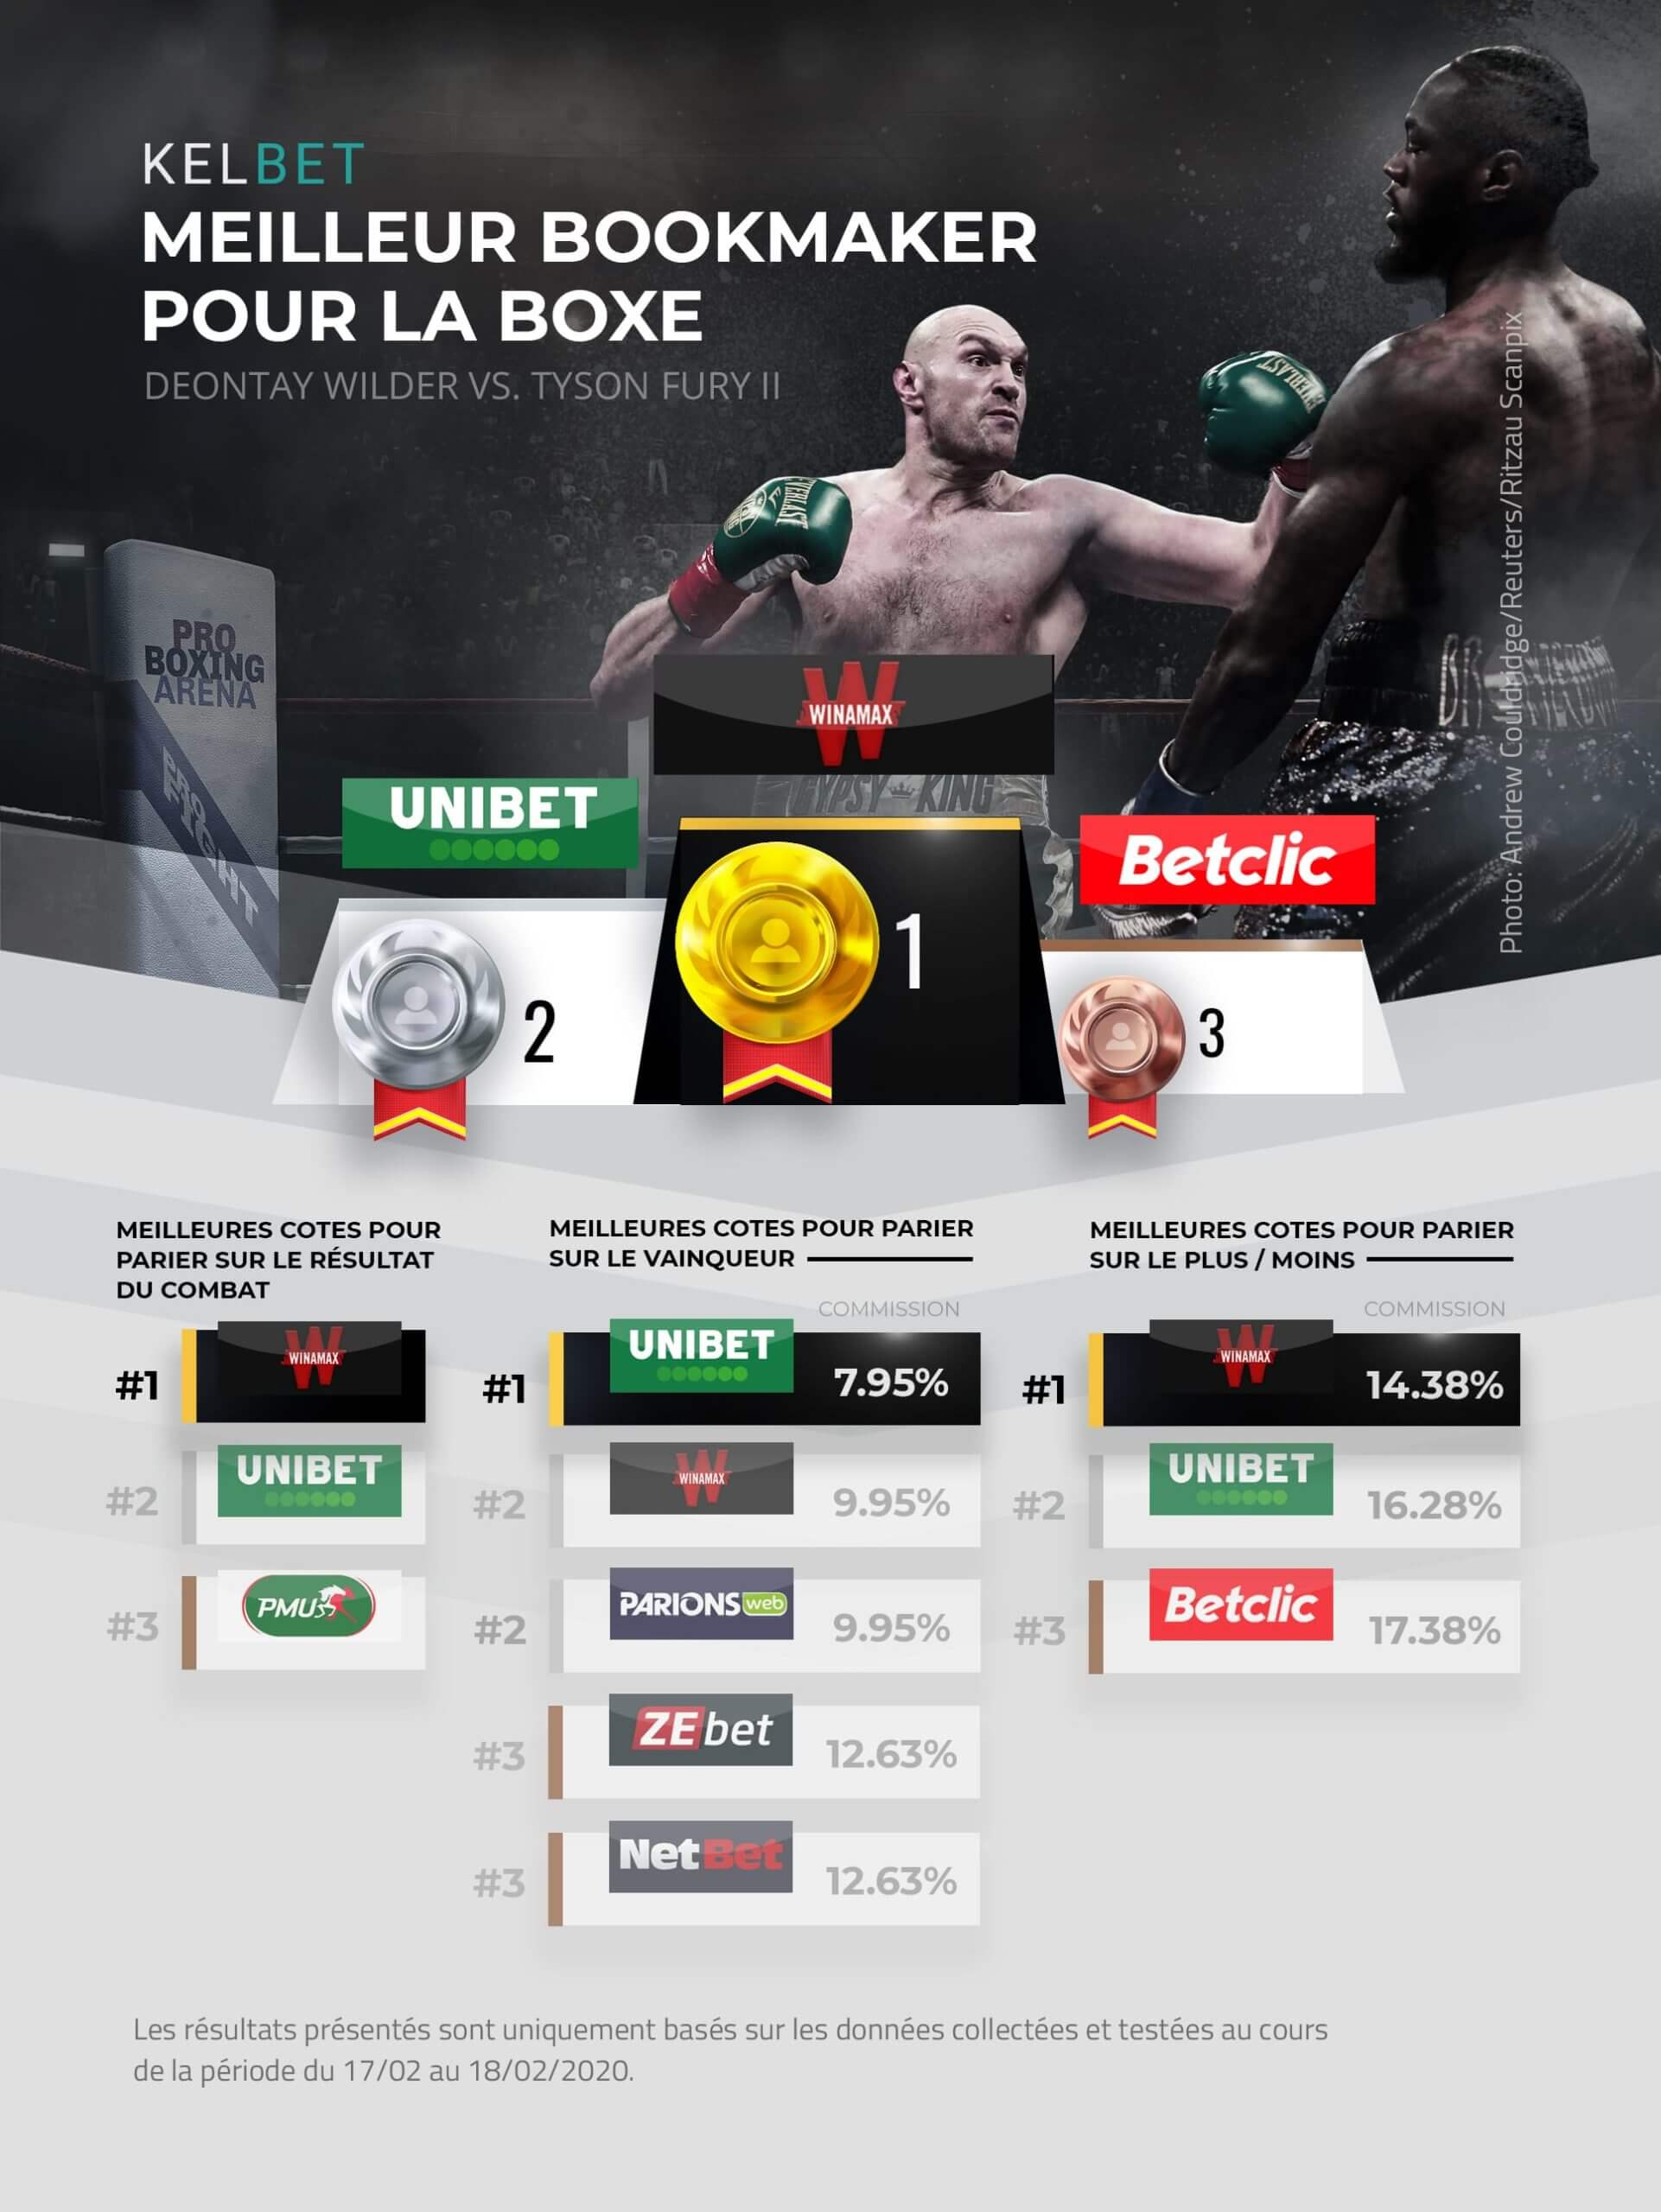 meilleurs bookmakers boxe